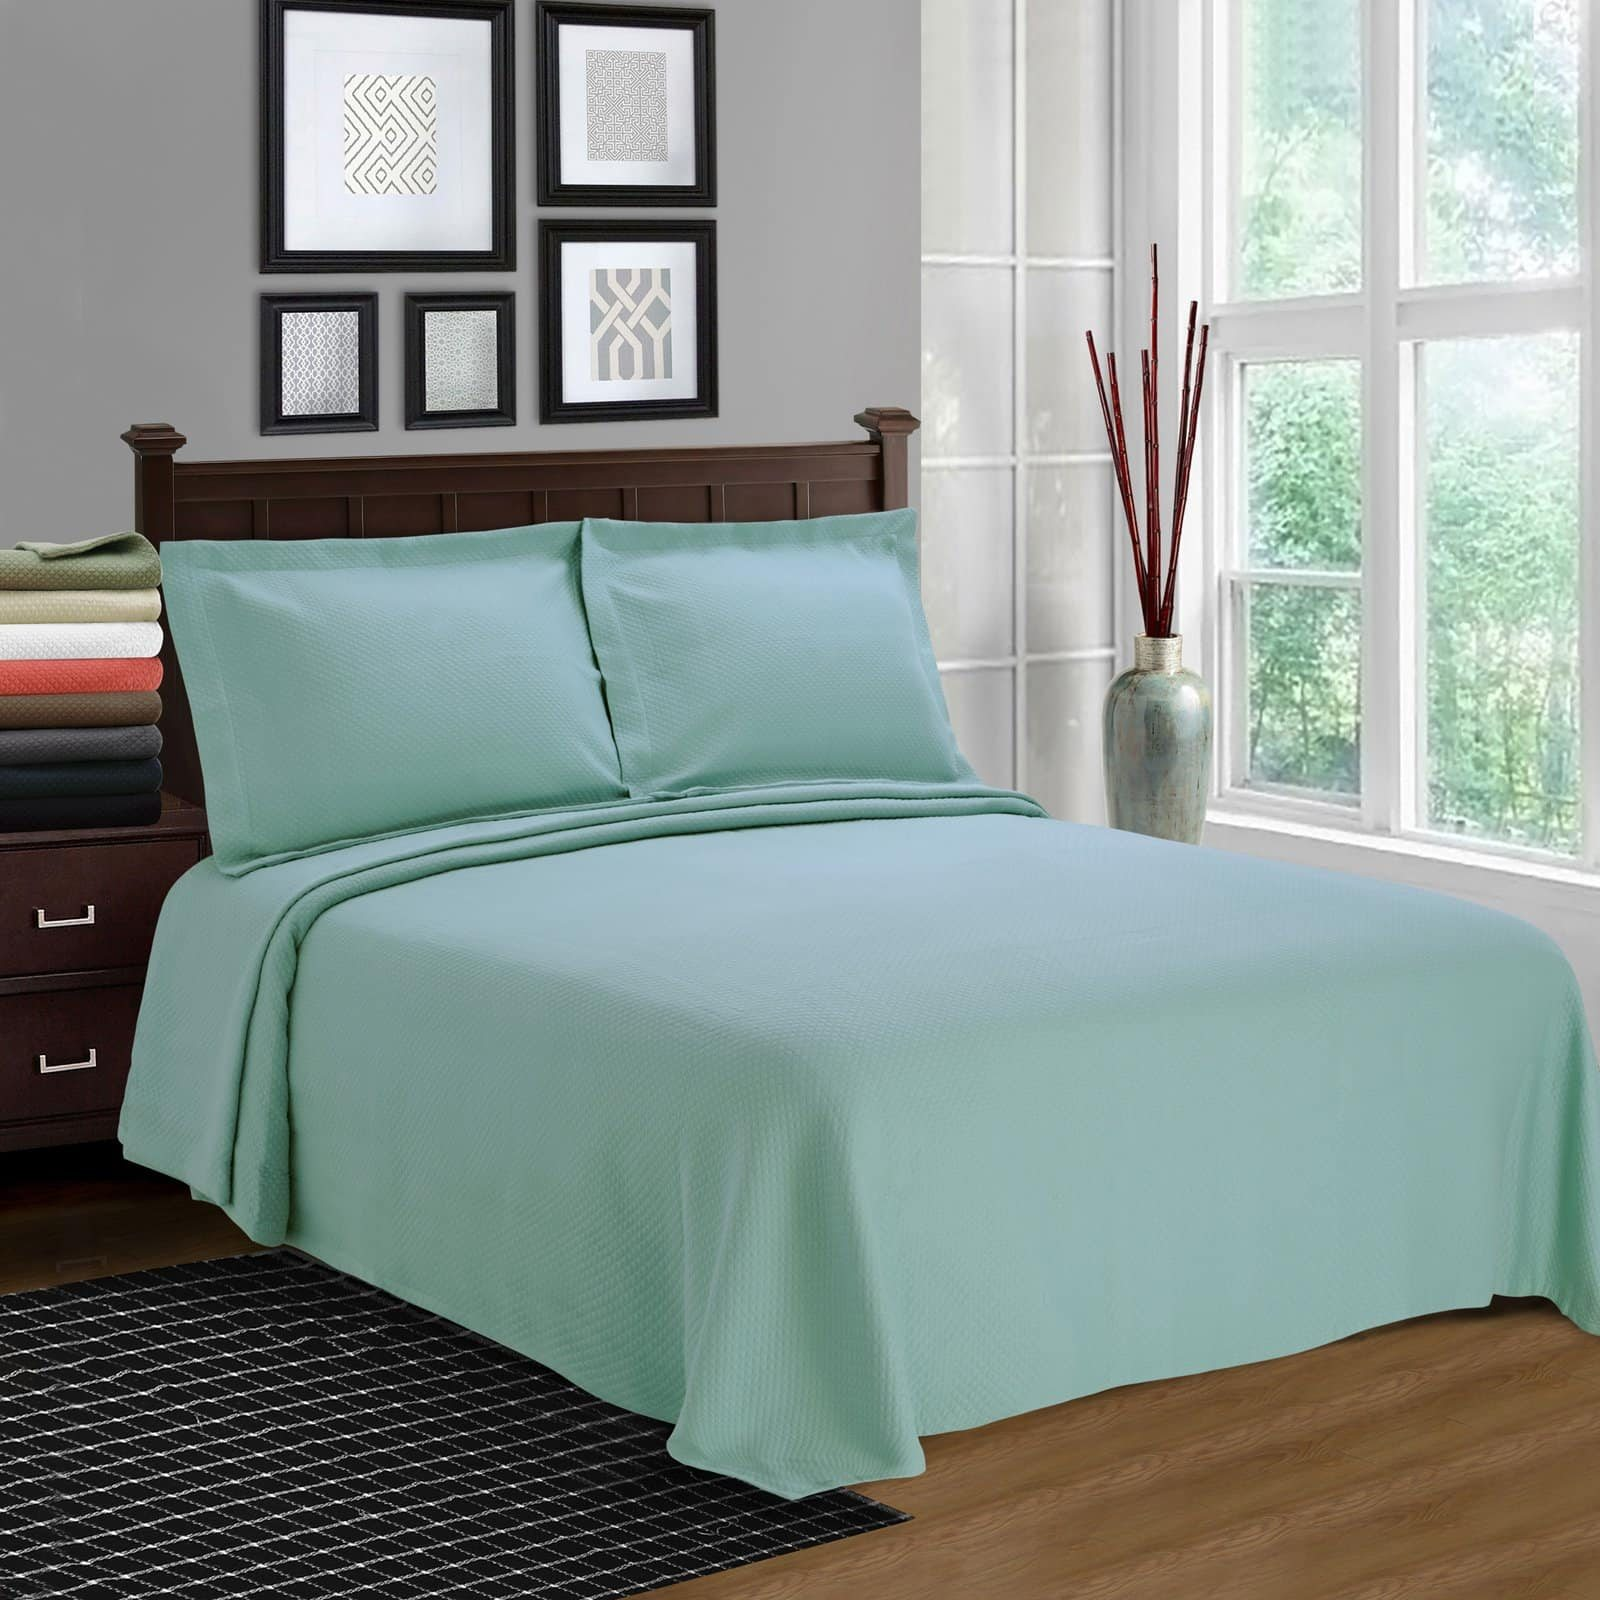 Solitaire Cotton Bedspread Set